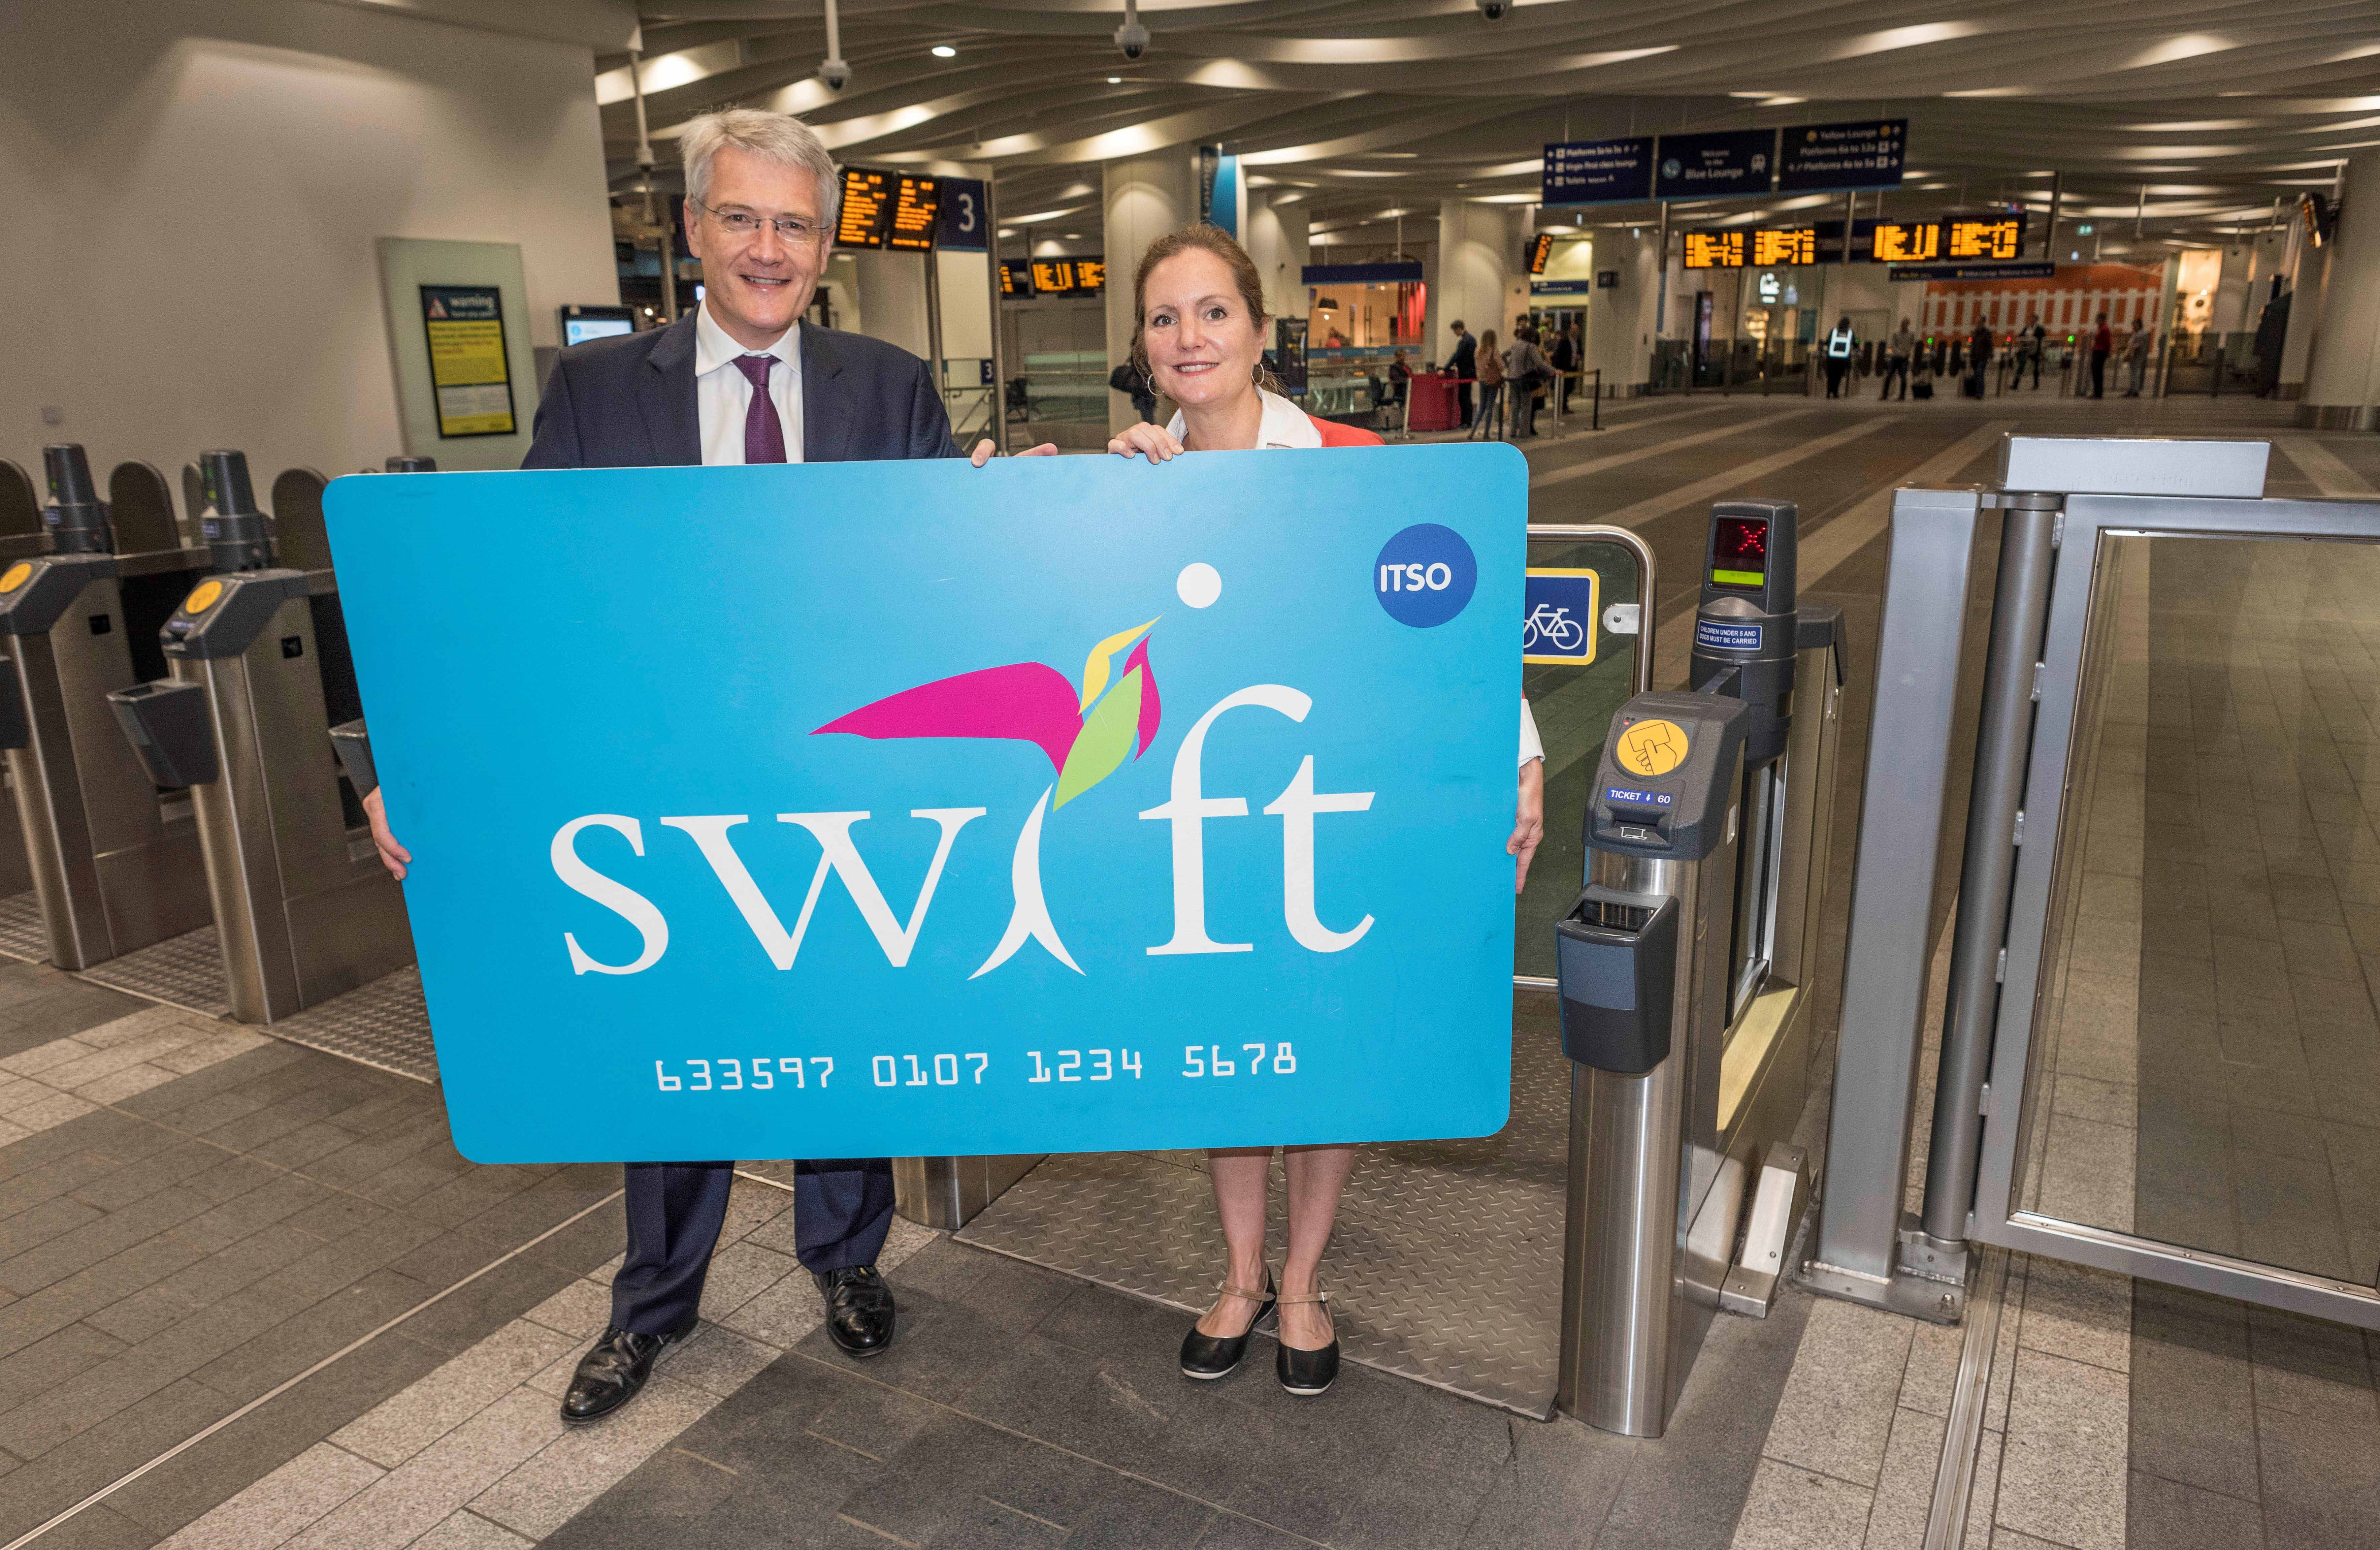 Transport minister Andrew Jones launches Swift card on West Midlands rail network